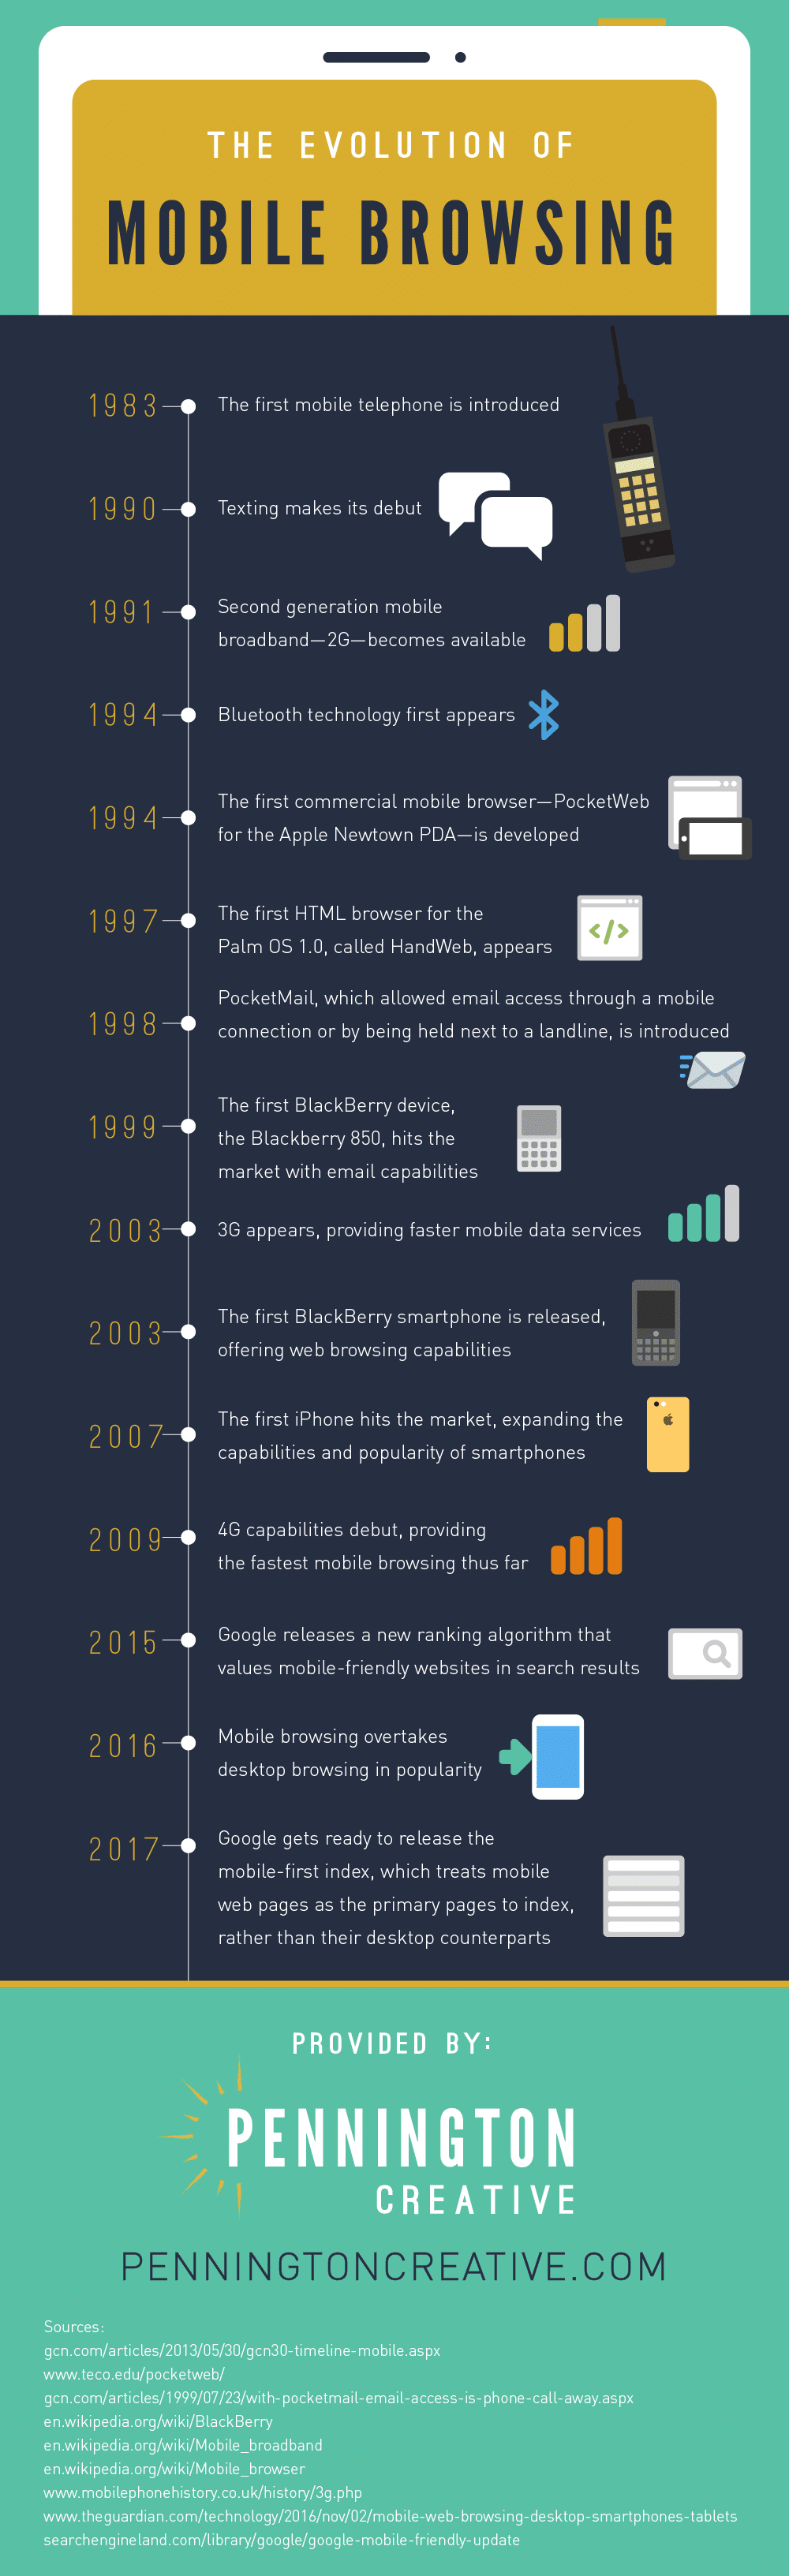 Infographic with a timeline of the development of mobile internet.